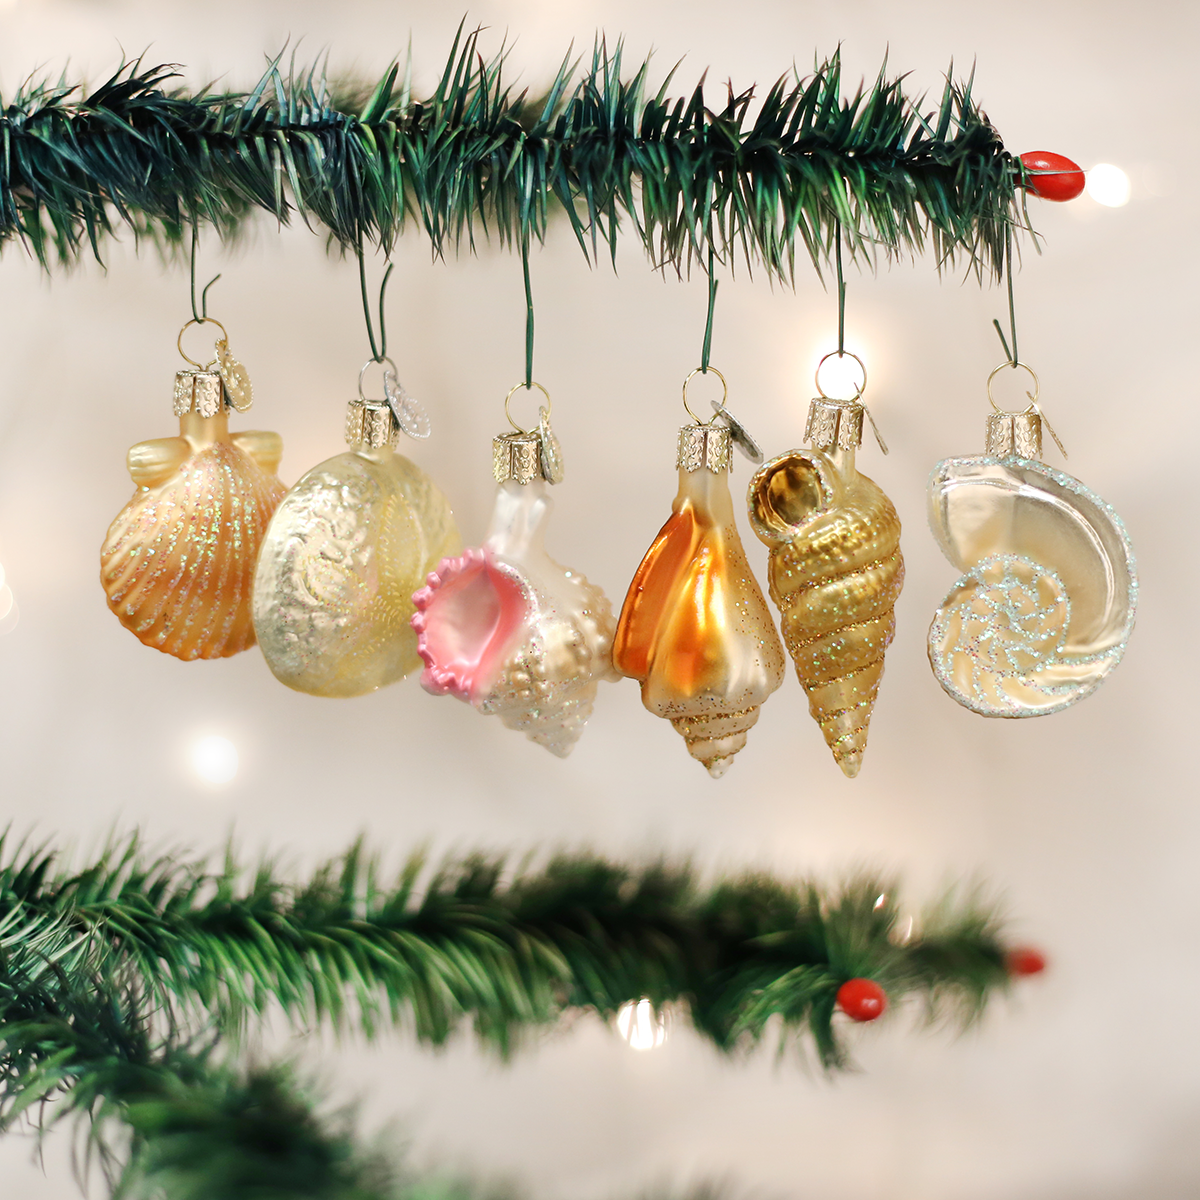 Assortments & Ornament Sets